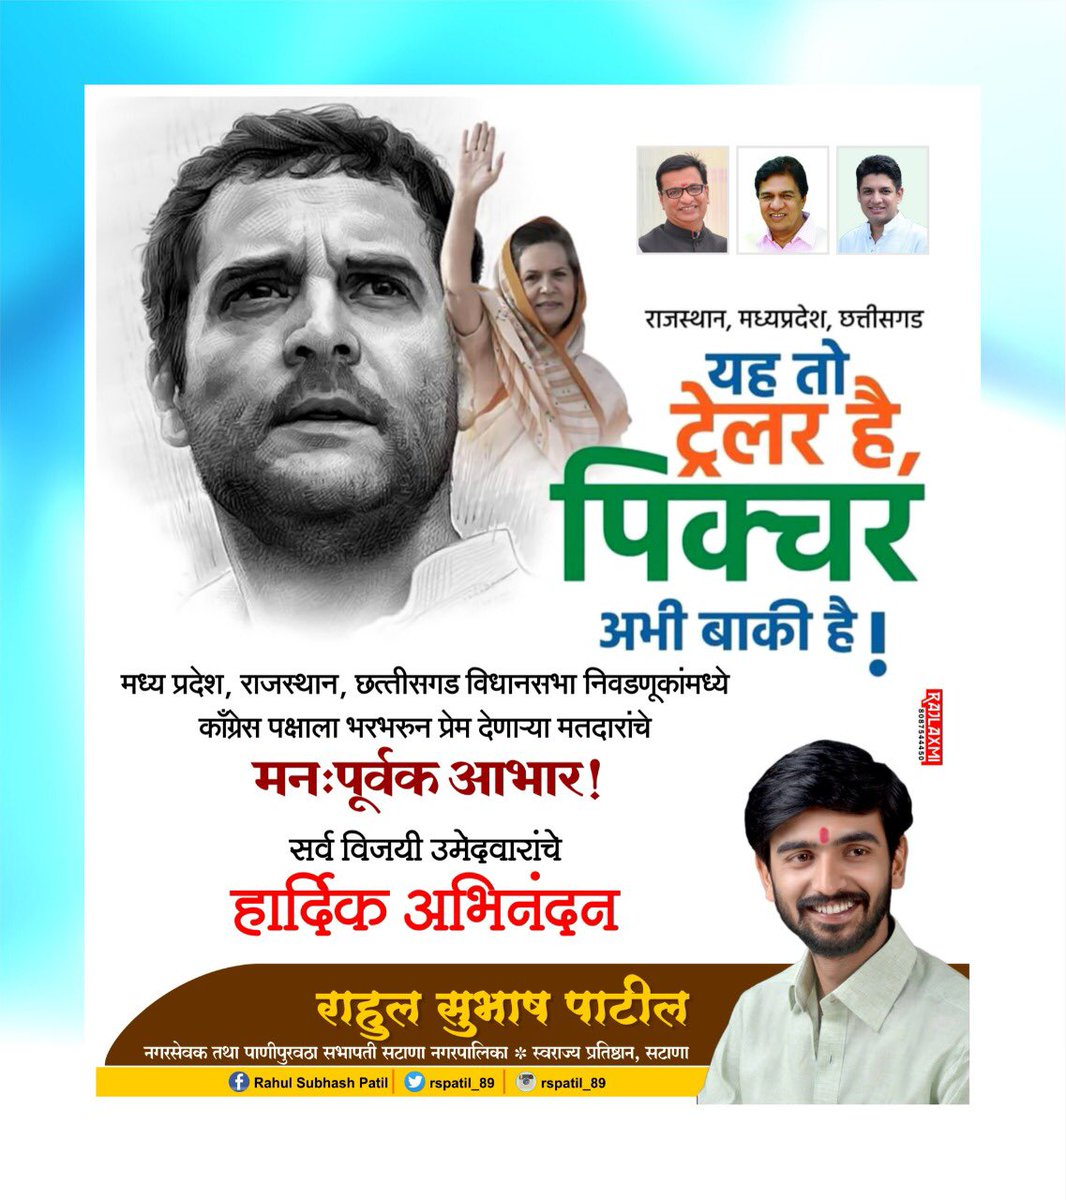 #CongressIsWinning Latest News Trends Updates Images - rspatil_89